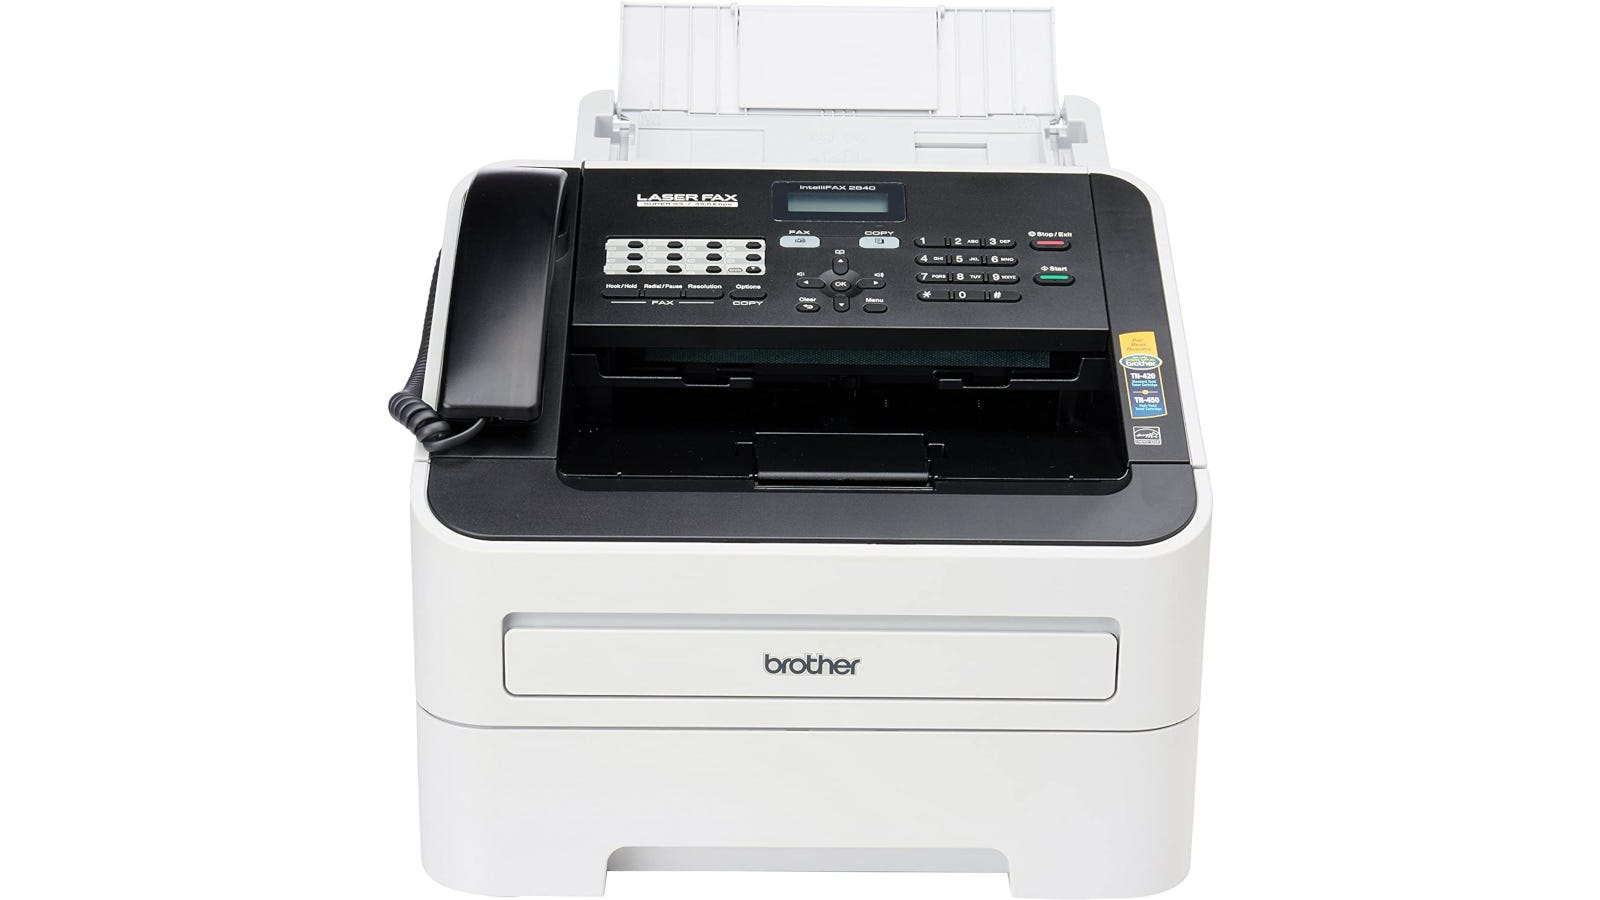 white and black fax machine with 20-page auto-feeder and 16MB memory